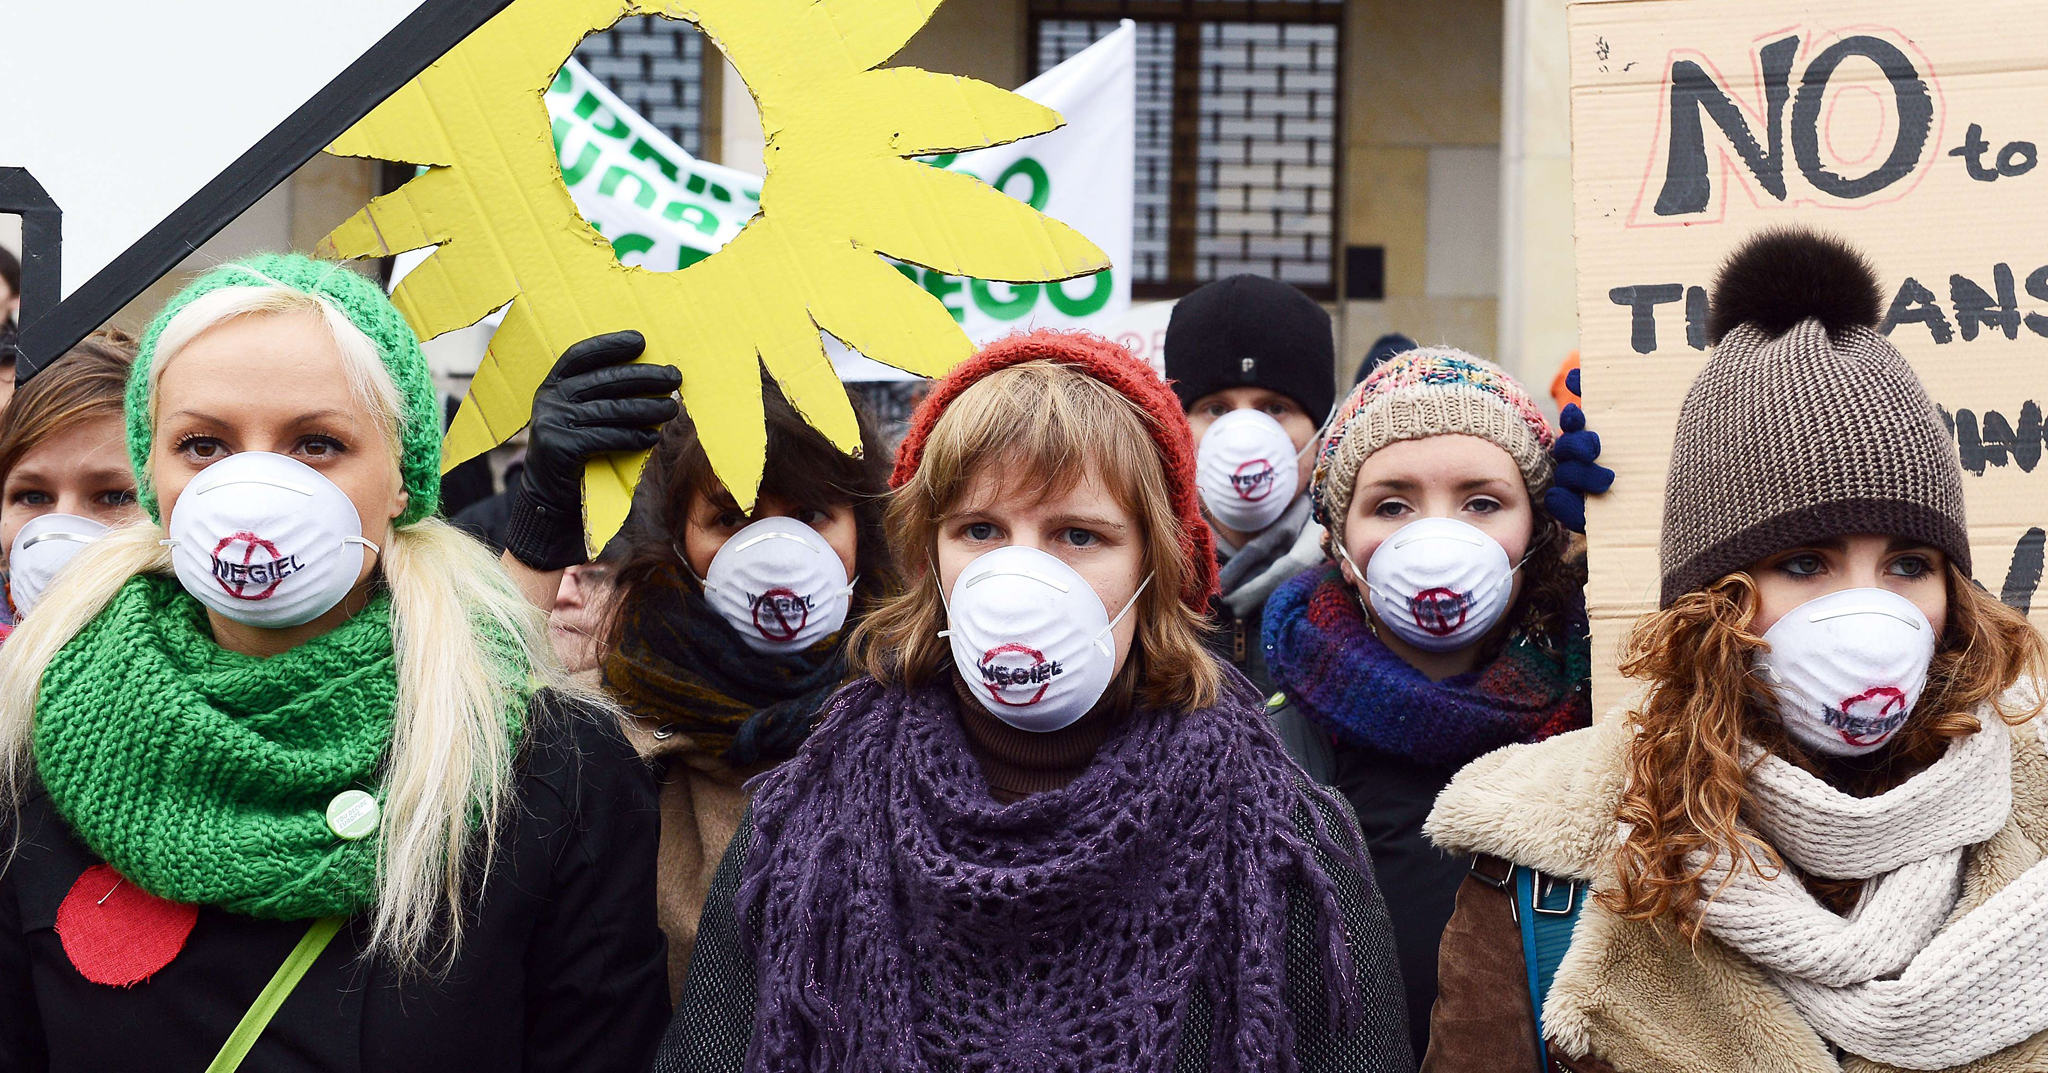 Young environmentalists from international organizations protest in front of the Polish Ministry of Economy in Warsaw, where the Coal and Climate Summit is taking place. Poland's dependence on the cheap and plentiful coal means it ranks fifth for carbon dioxide (CO2) pollution in the European Union, behind Germany, Britain, Italy and France, whose economies are far larger.